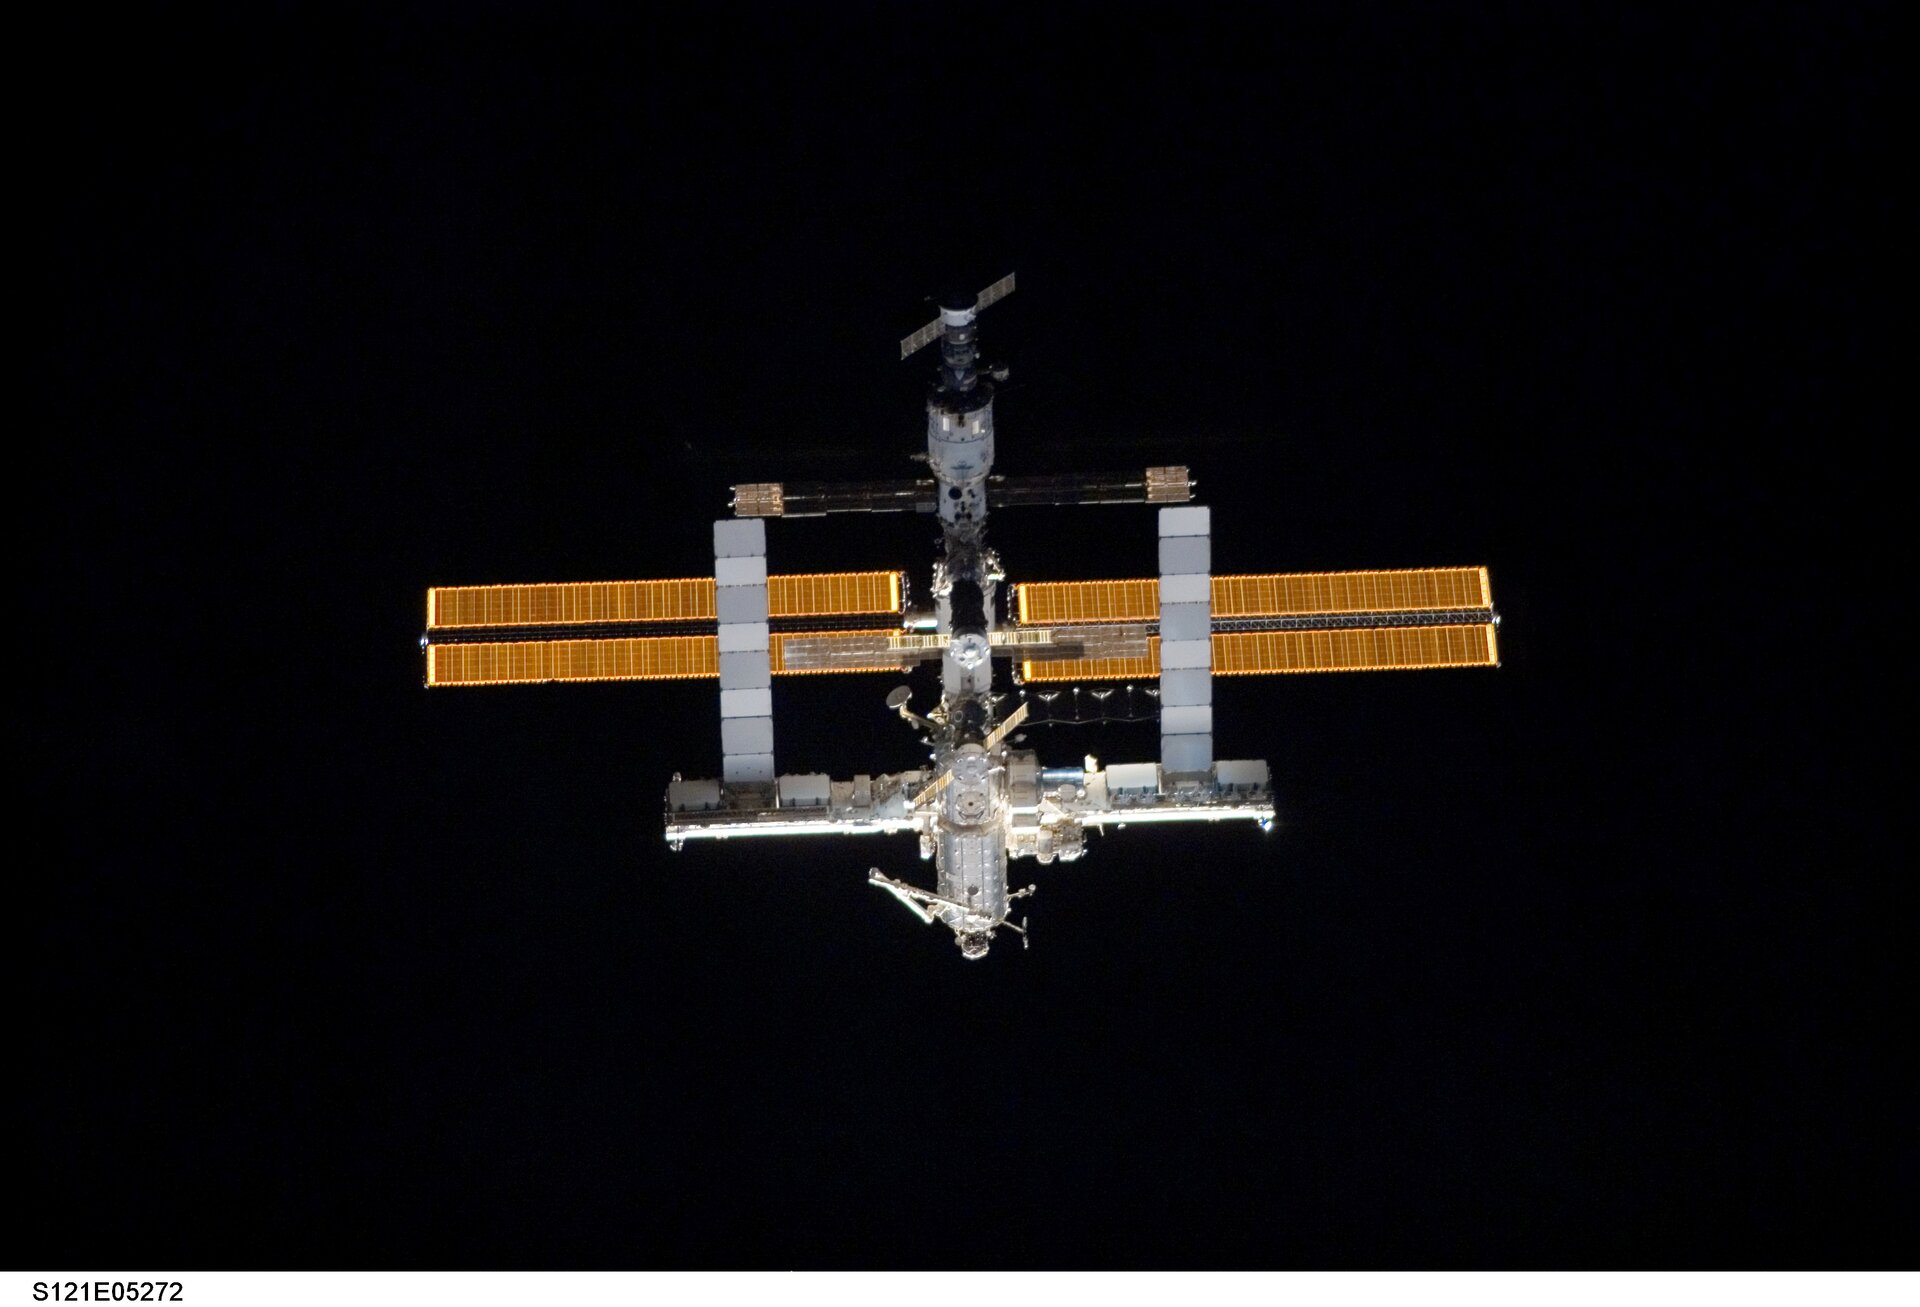 Reiter is scheduled to stay on board ISS until December 2006